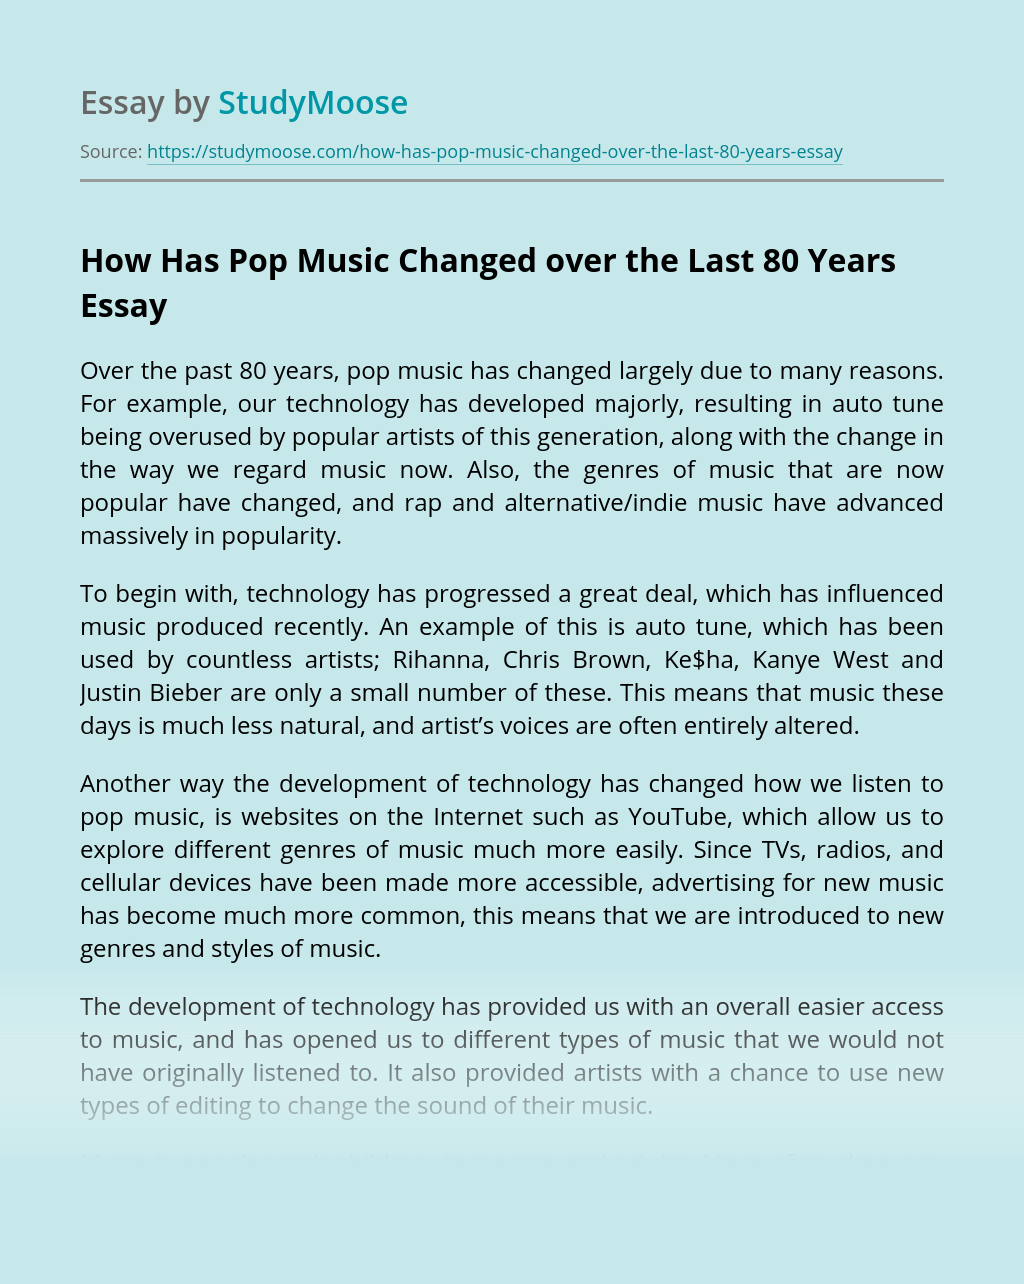 How Has Pop Music Changed over the Last 80 Years